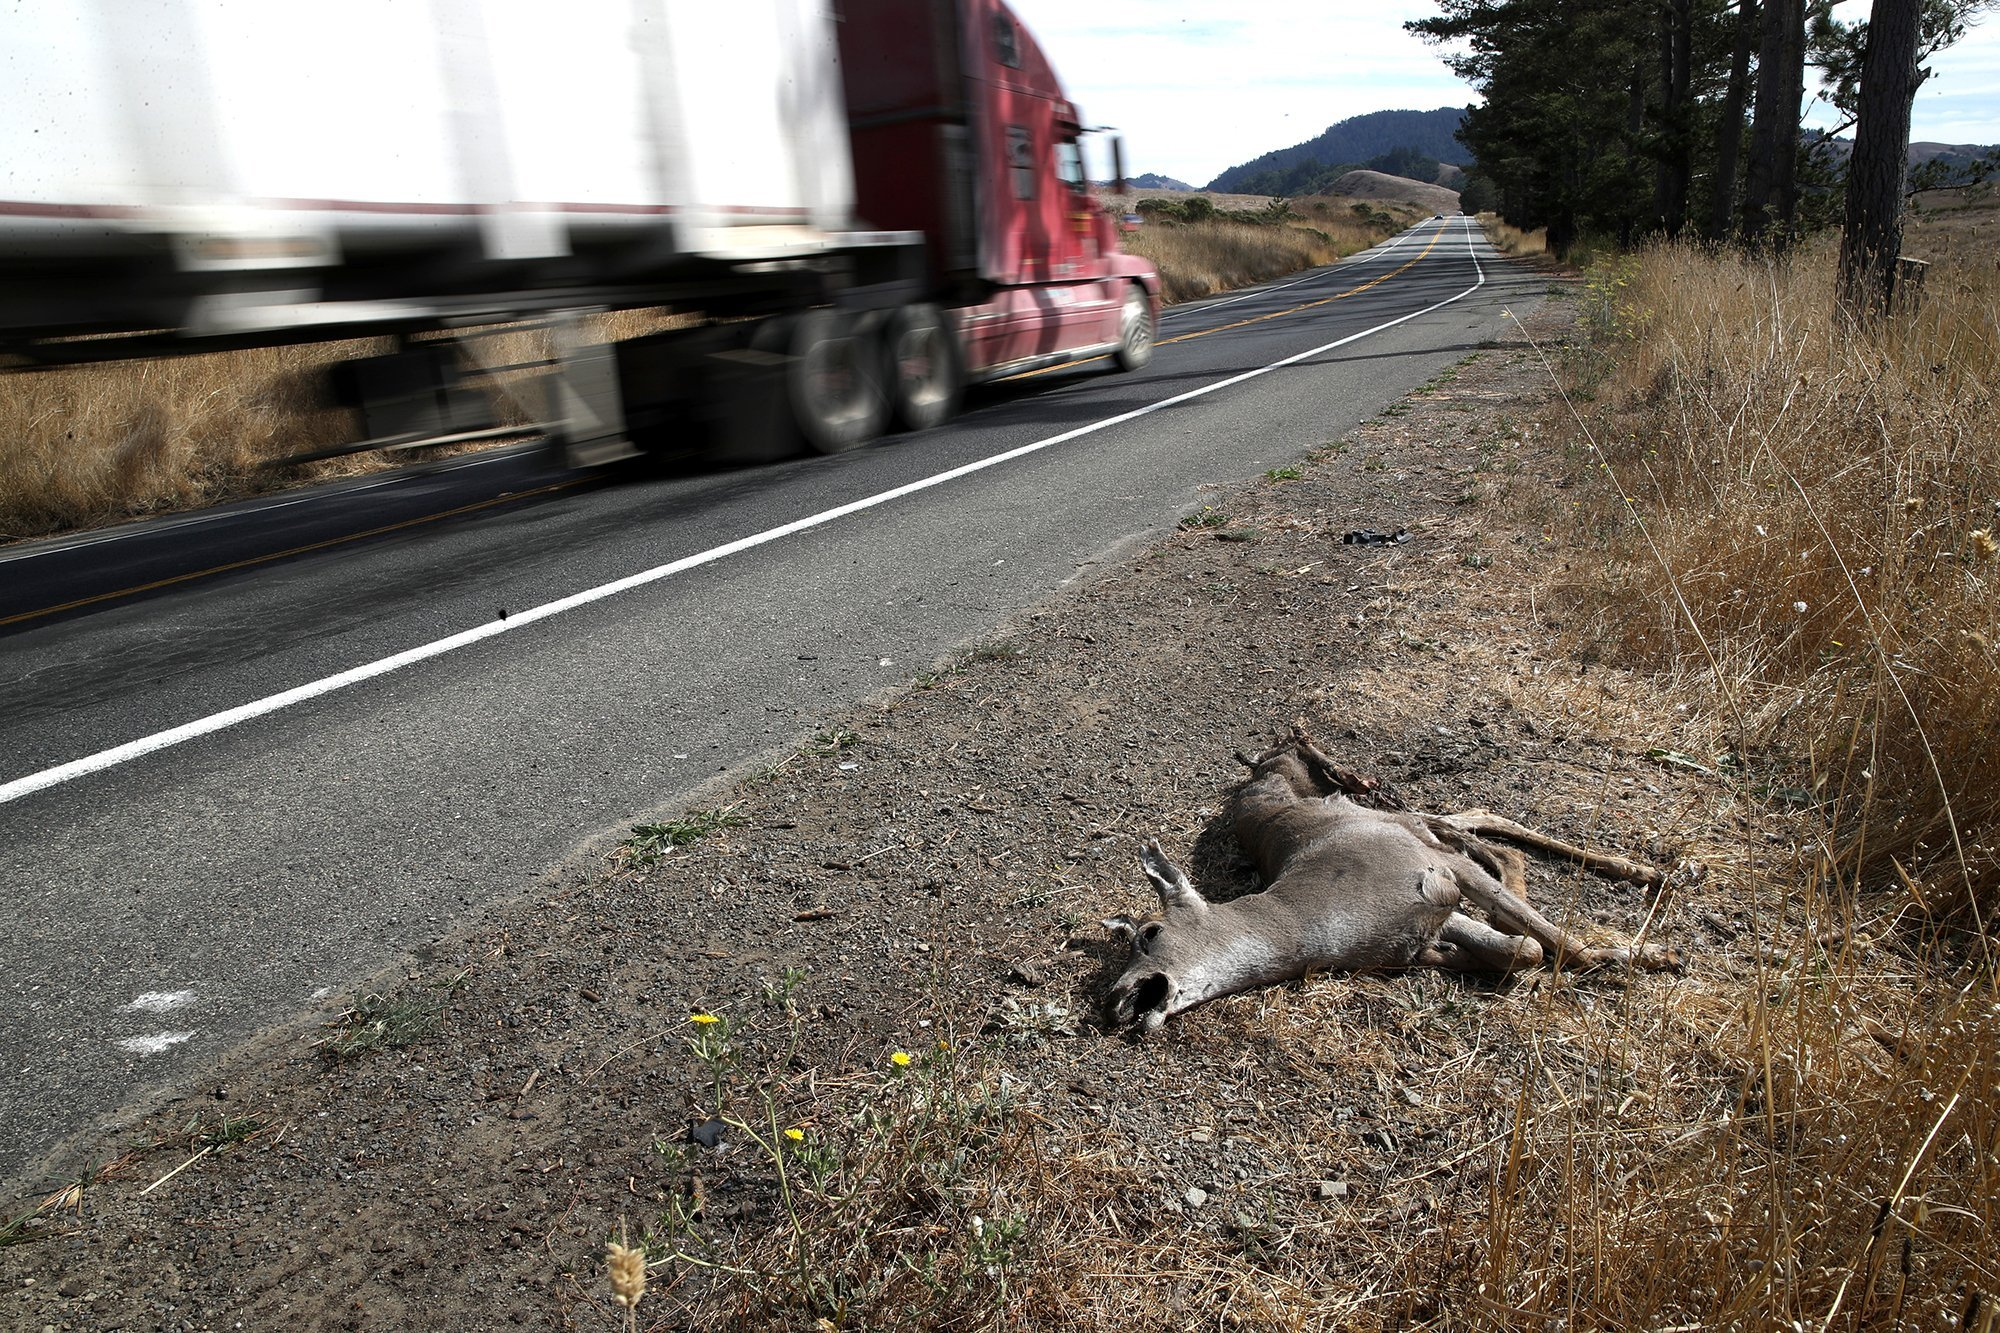 Some Californians may soon be able to eat their roadkill. That's already legal in more than 20 US states